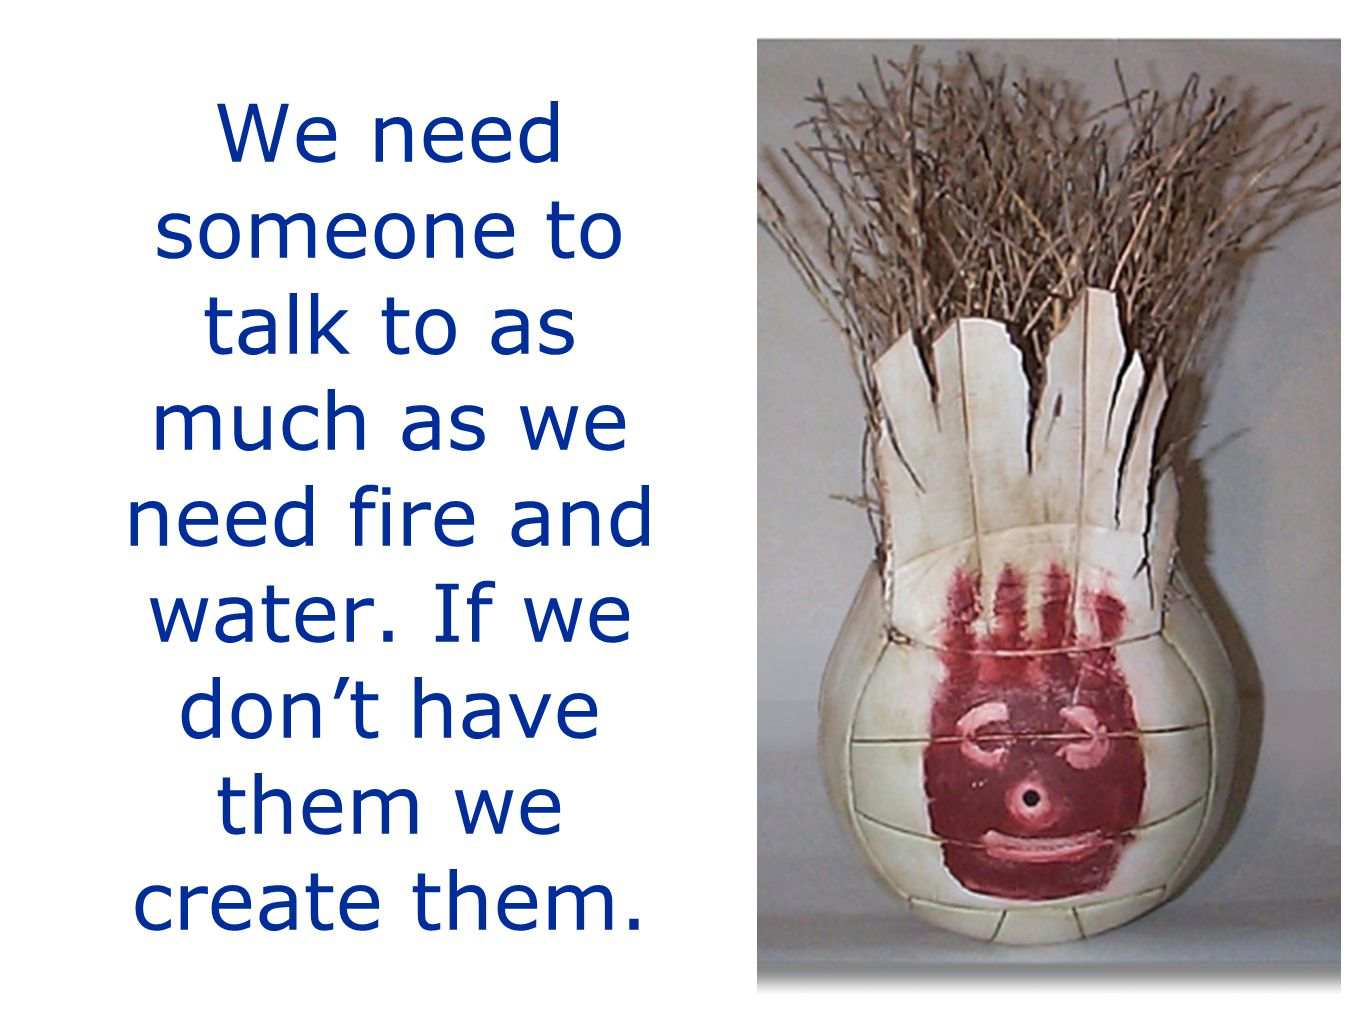 We need someone to talk to as much as we need fire and water